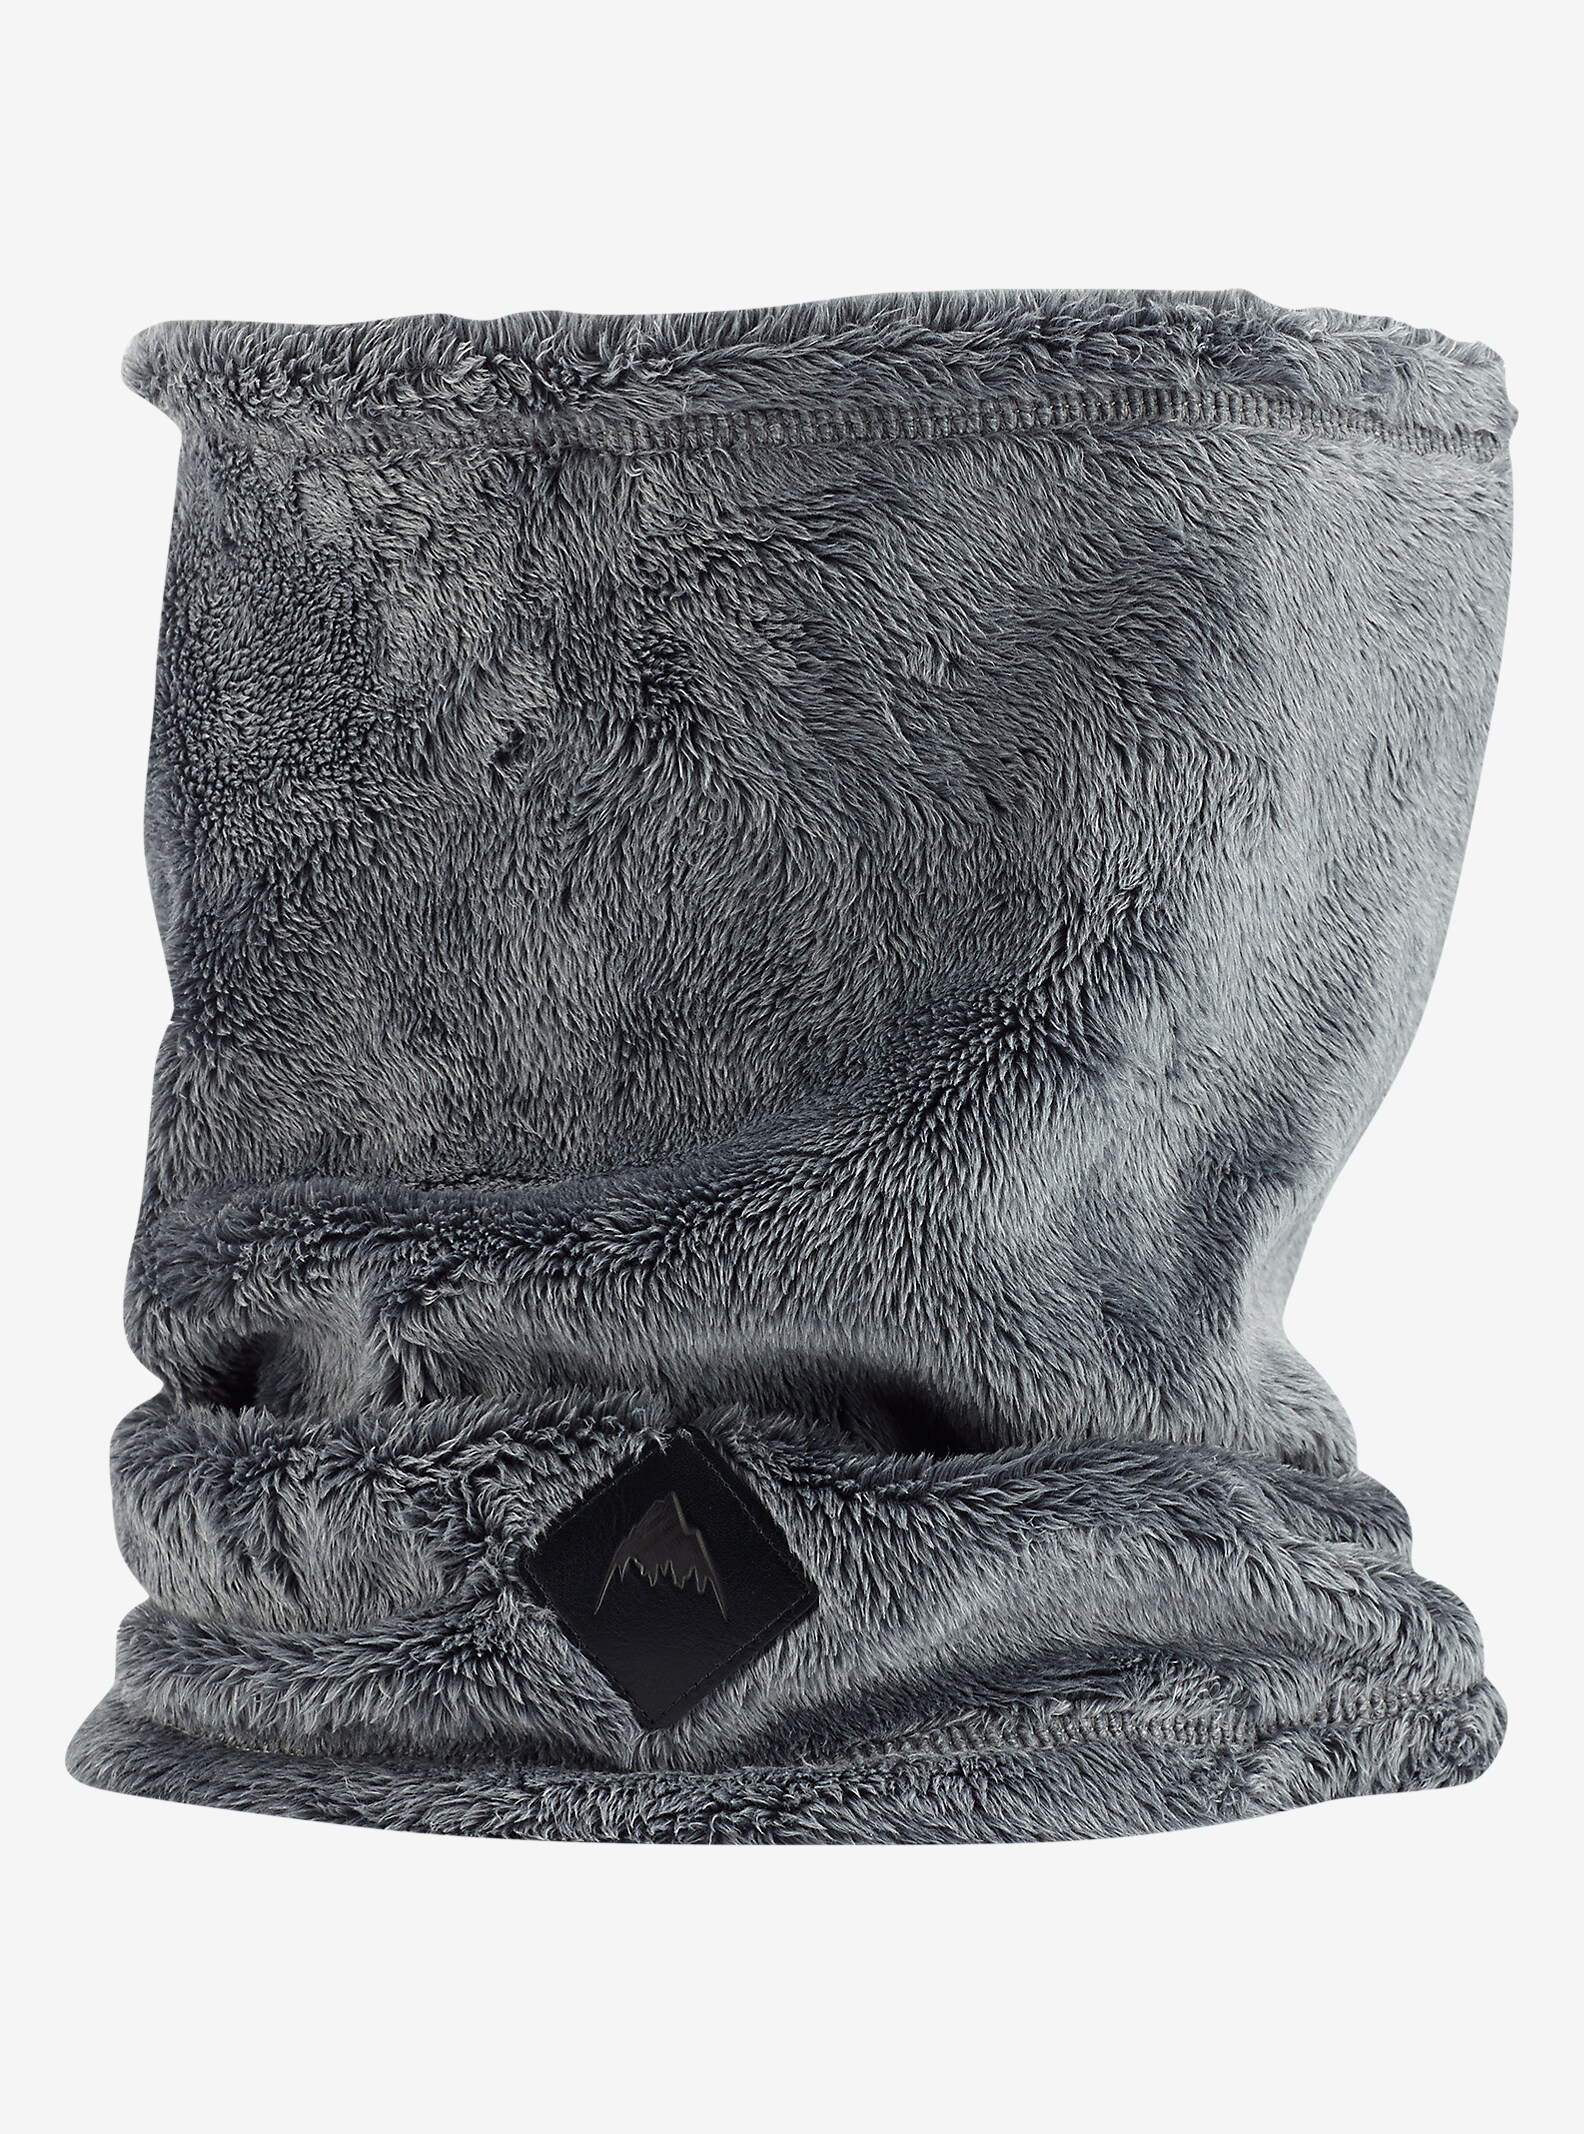 Burton Cora Neck Warmer shown in True Black